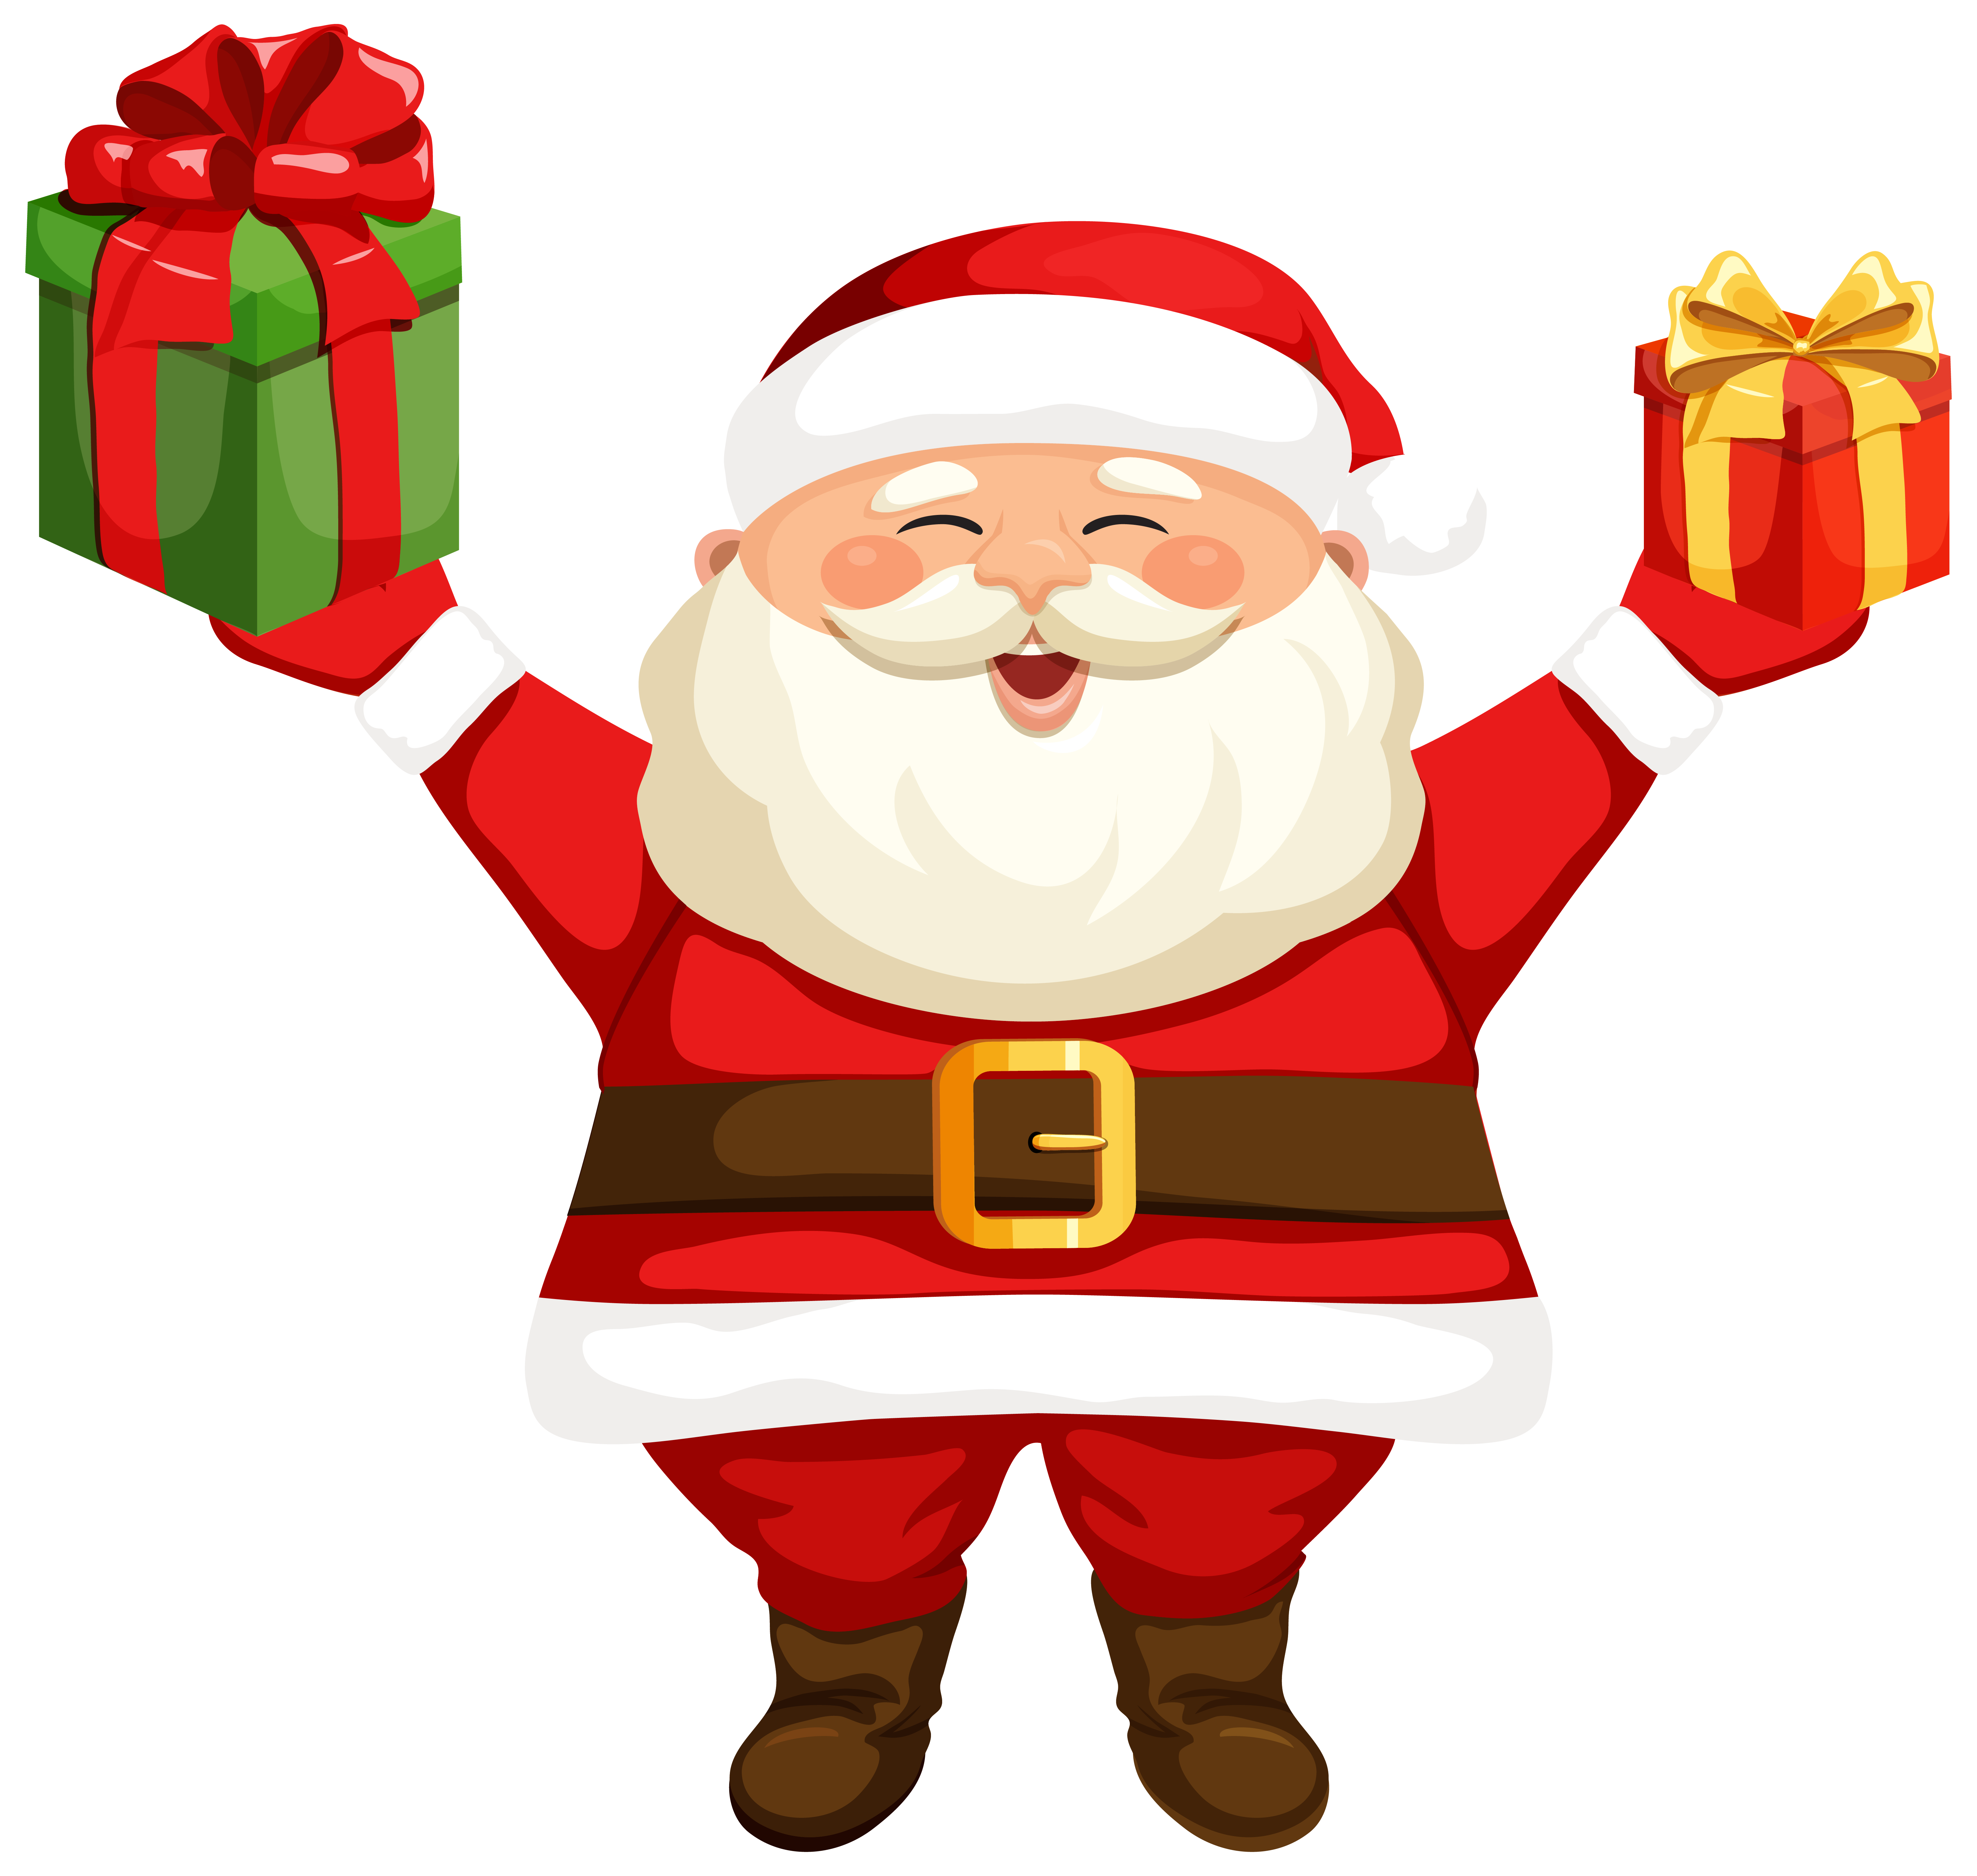 Santa clause clipart - Clipground